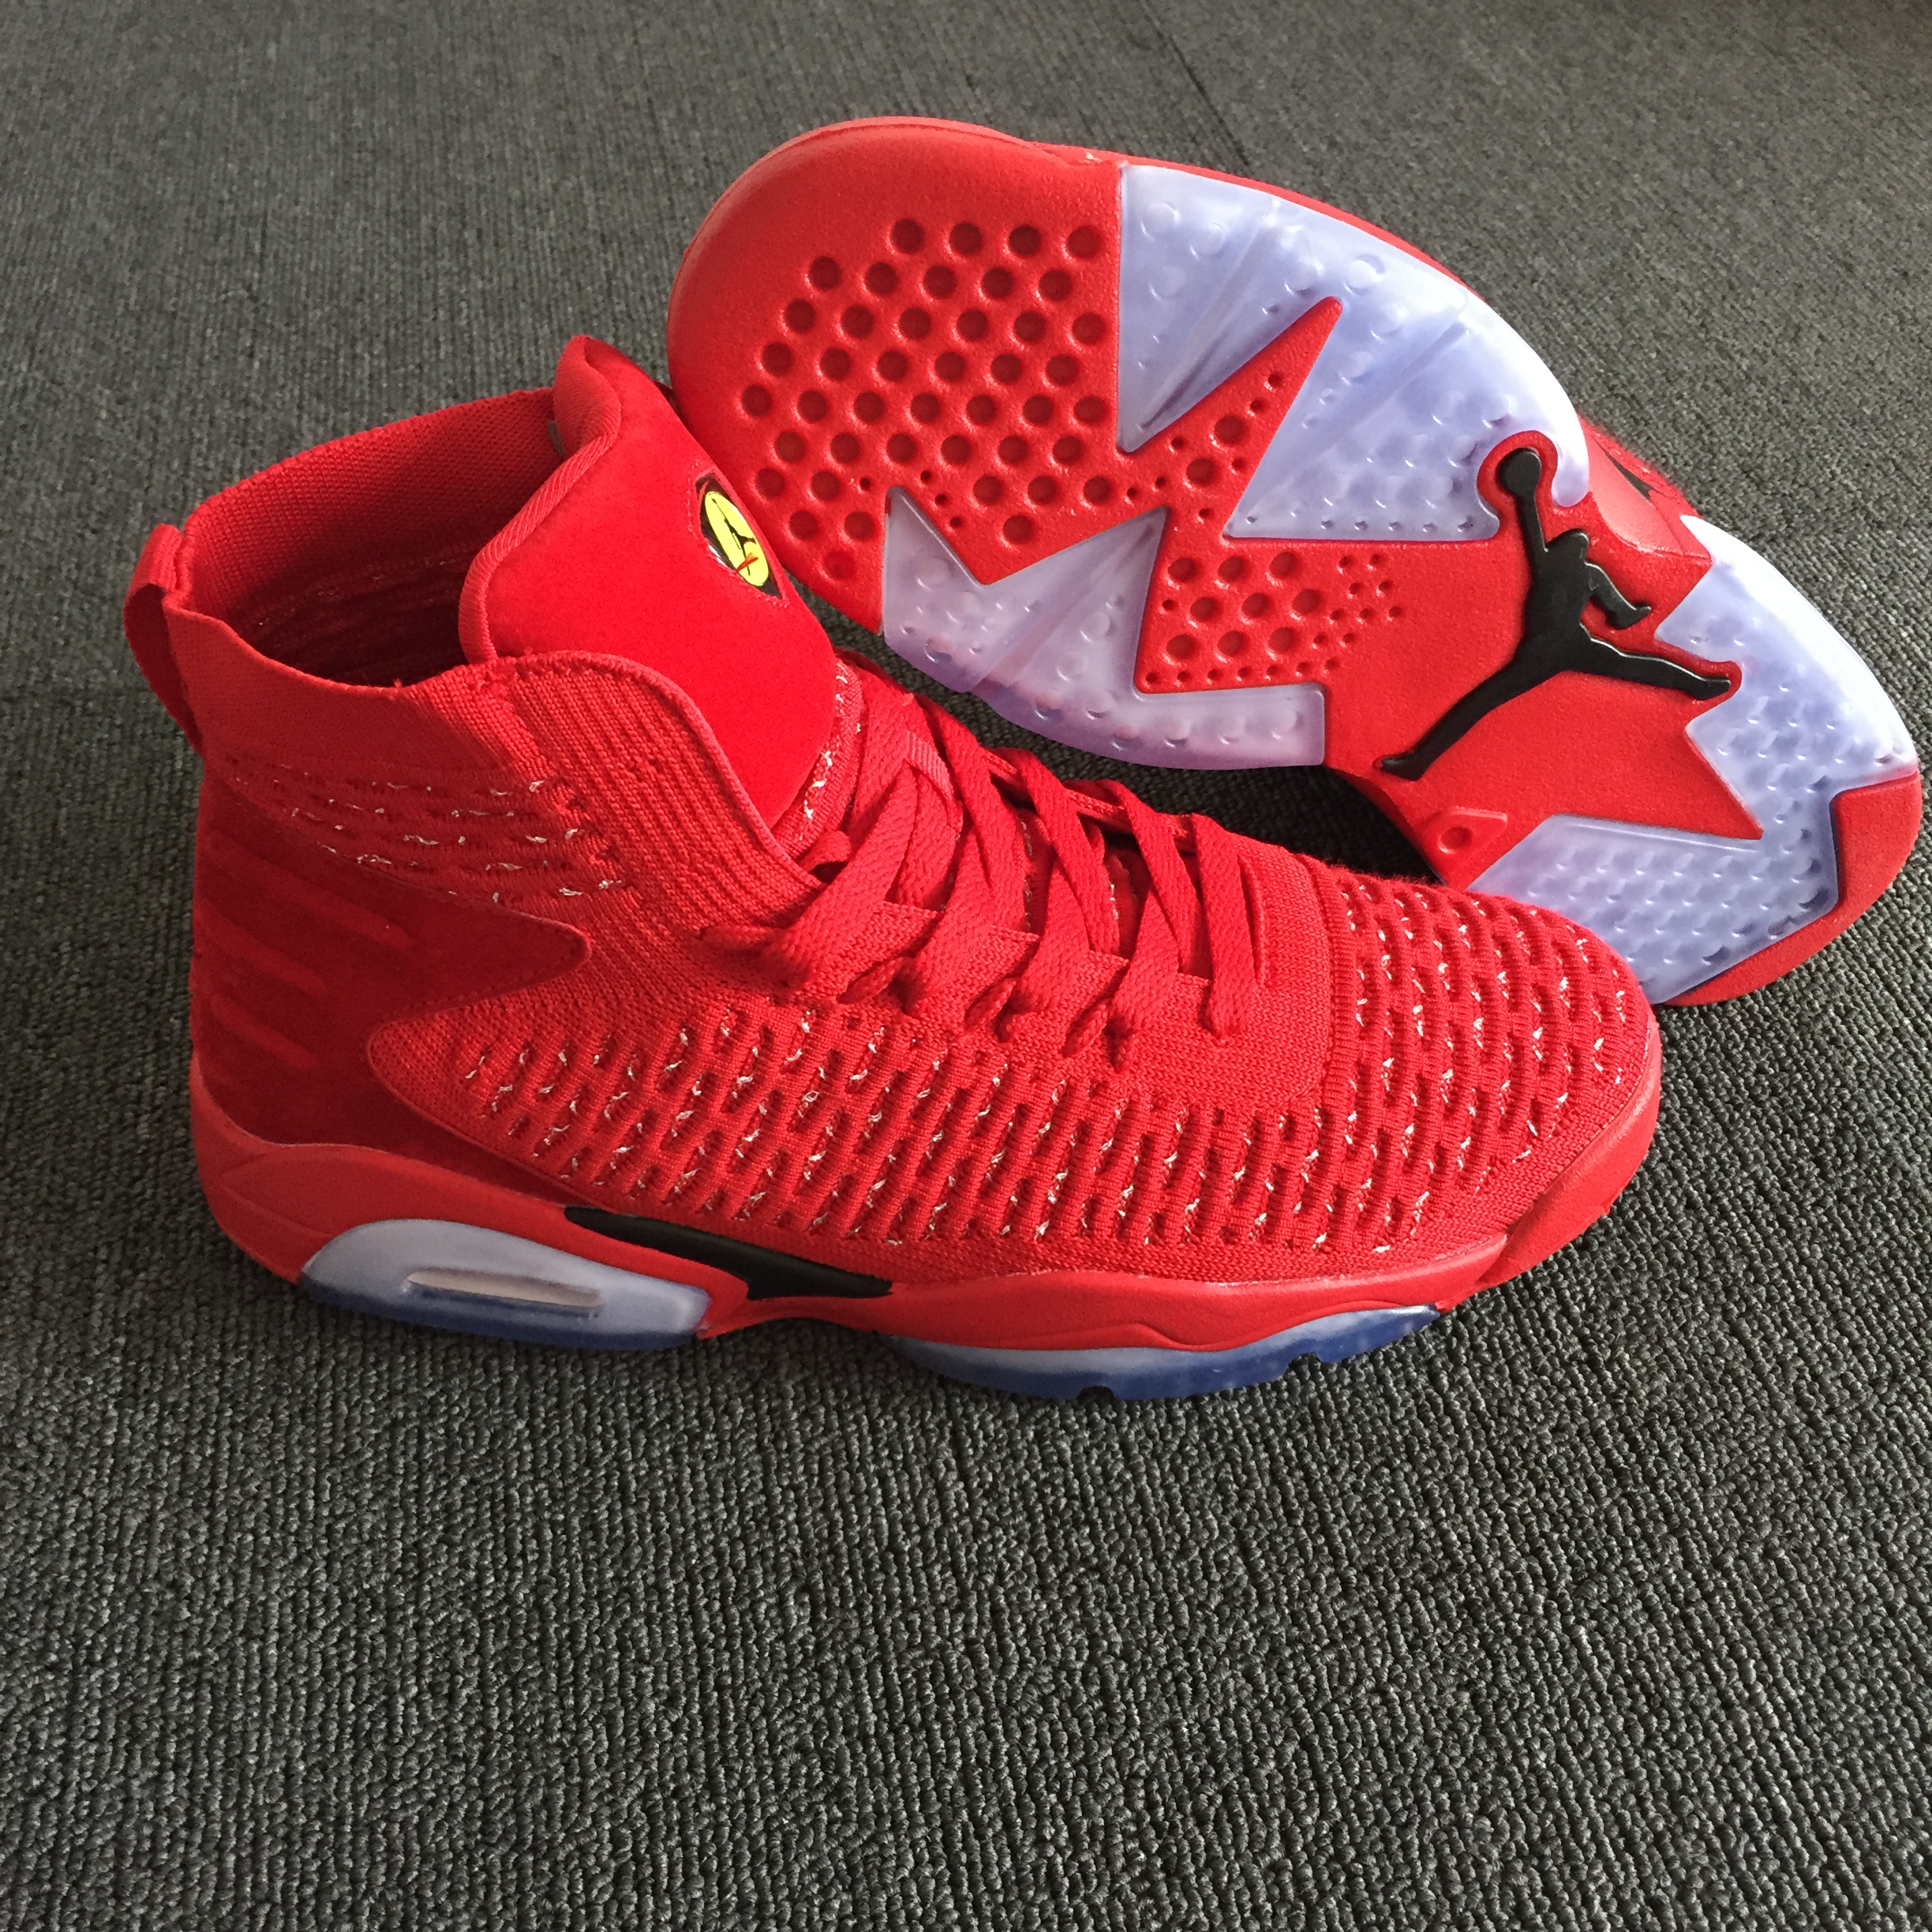 Men Air Jordan 6 Retro Knit China Red Shoes